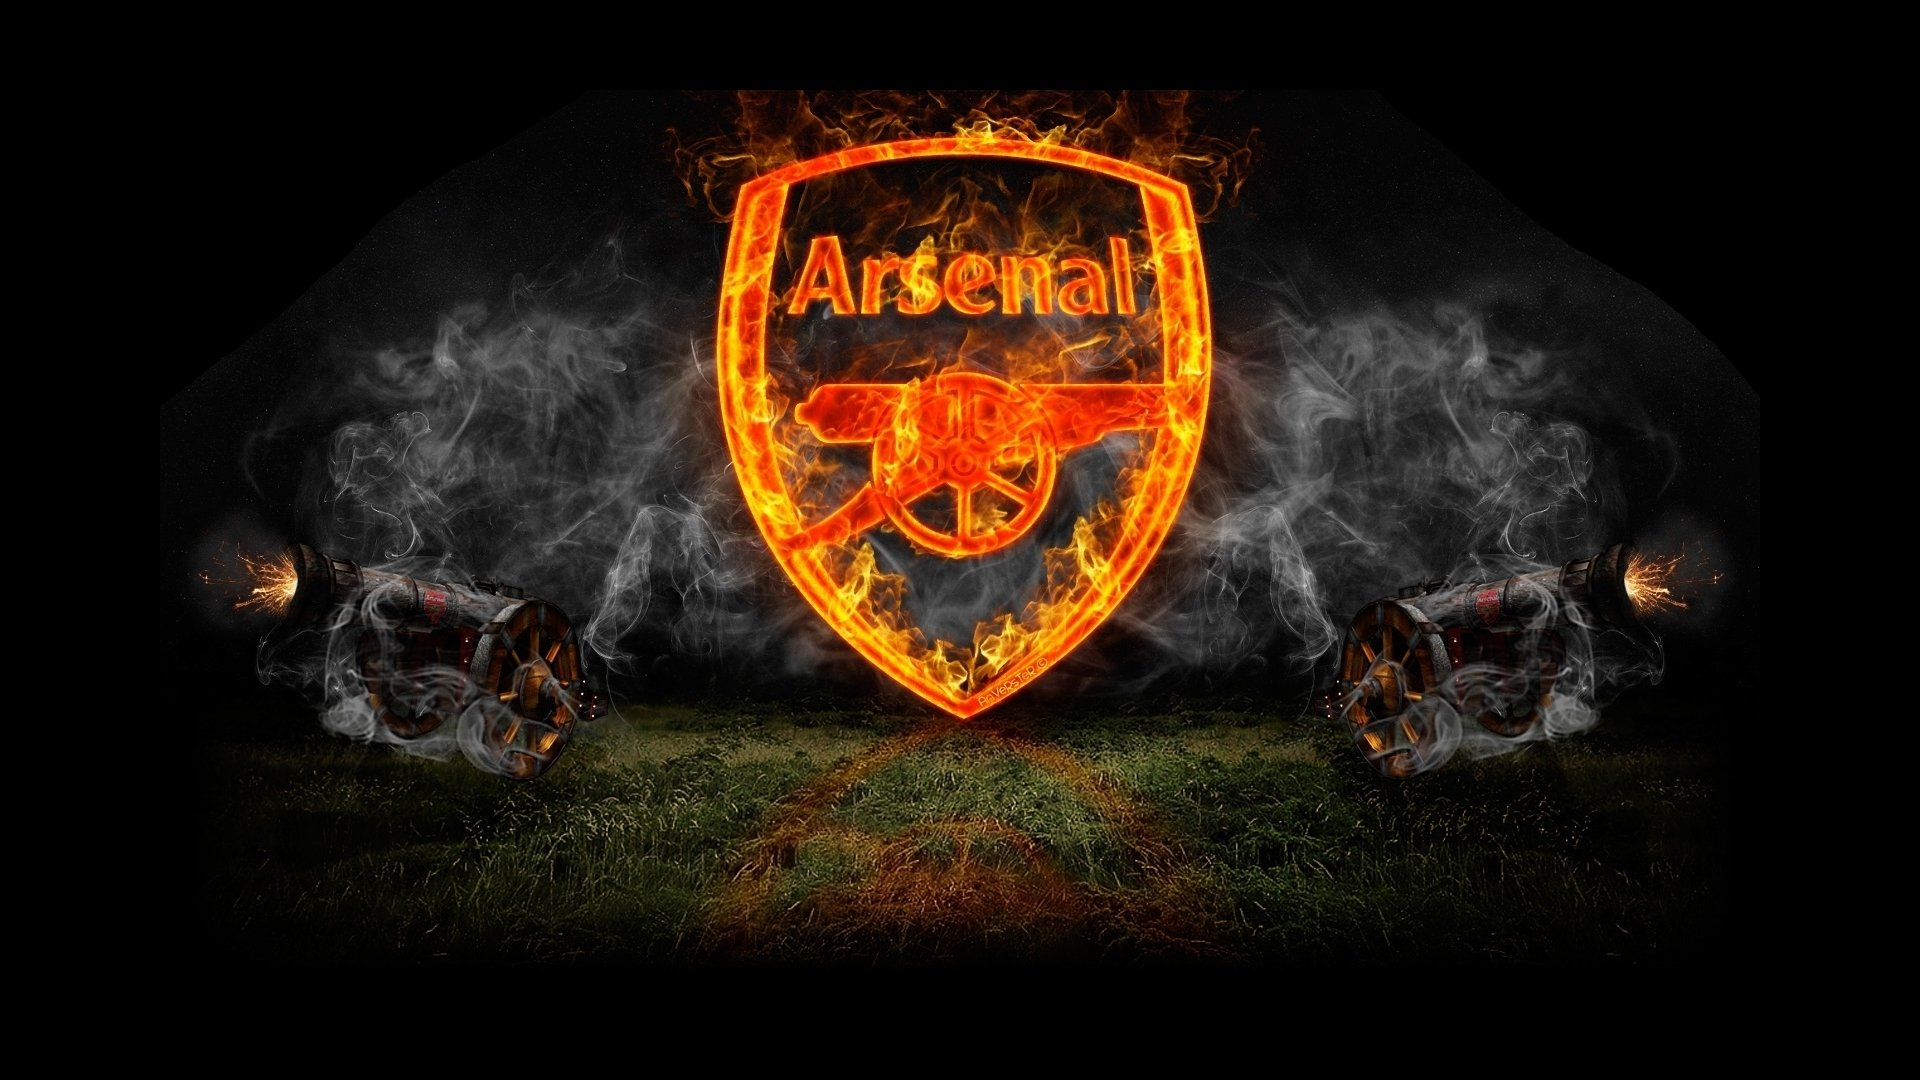 18 Arsenal F C  HD Wallpapers | Backgrounds - Wallpaper Abyss